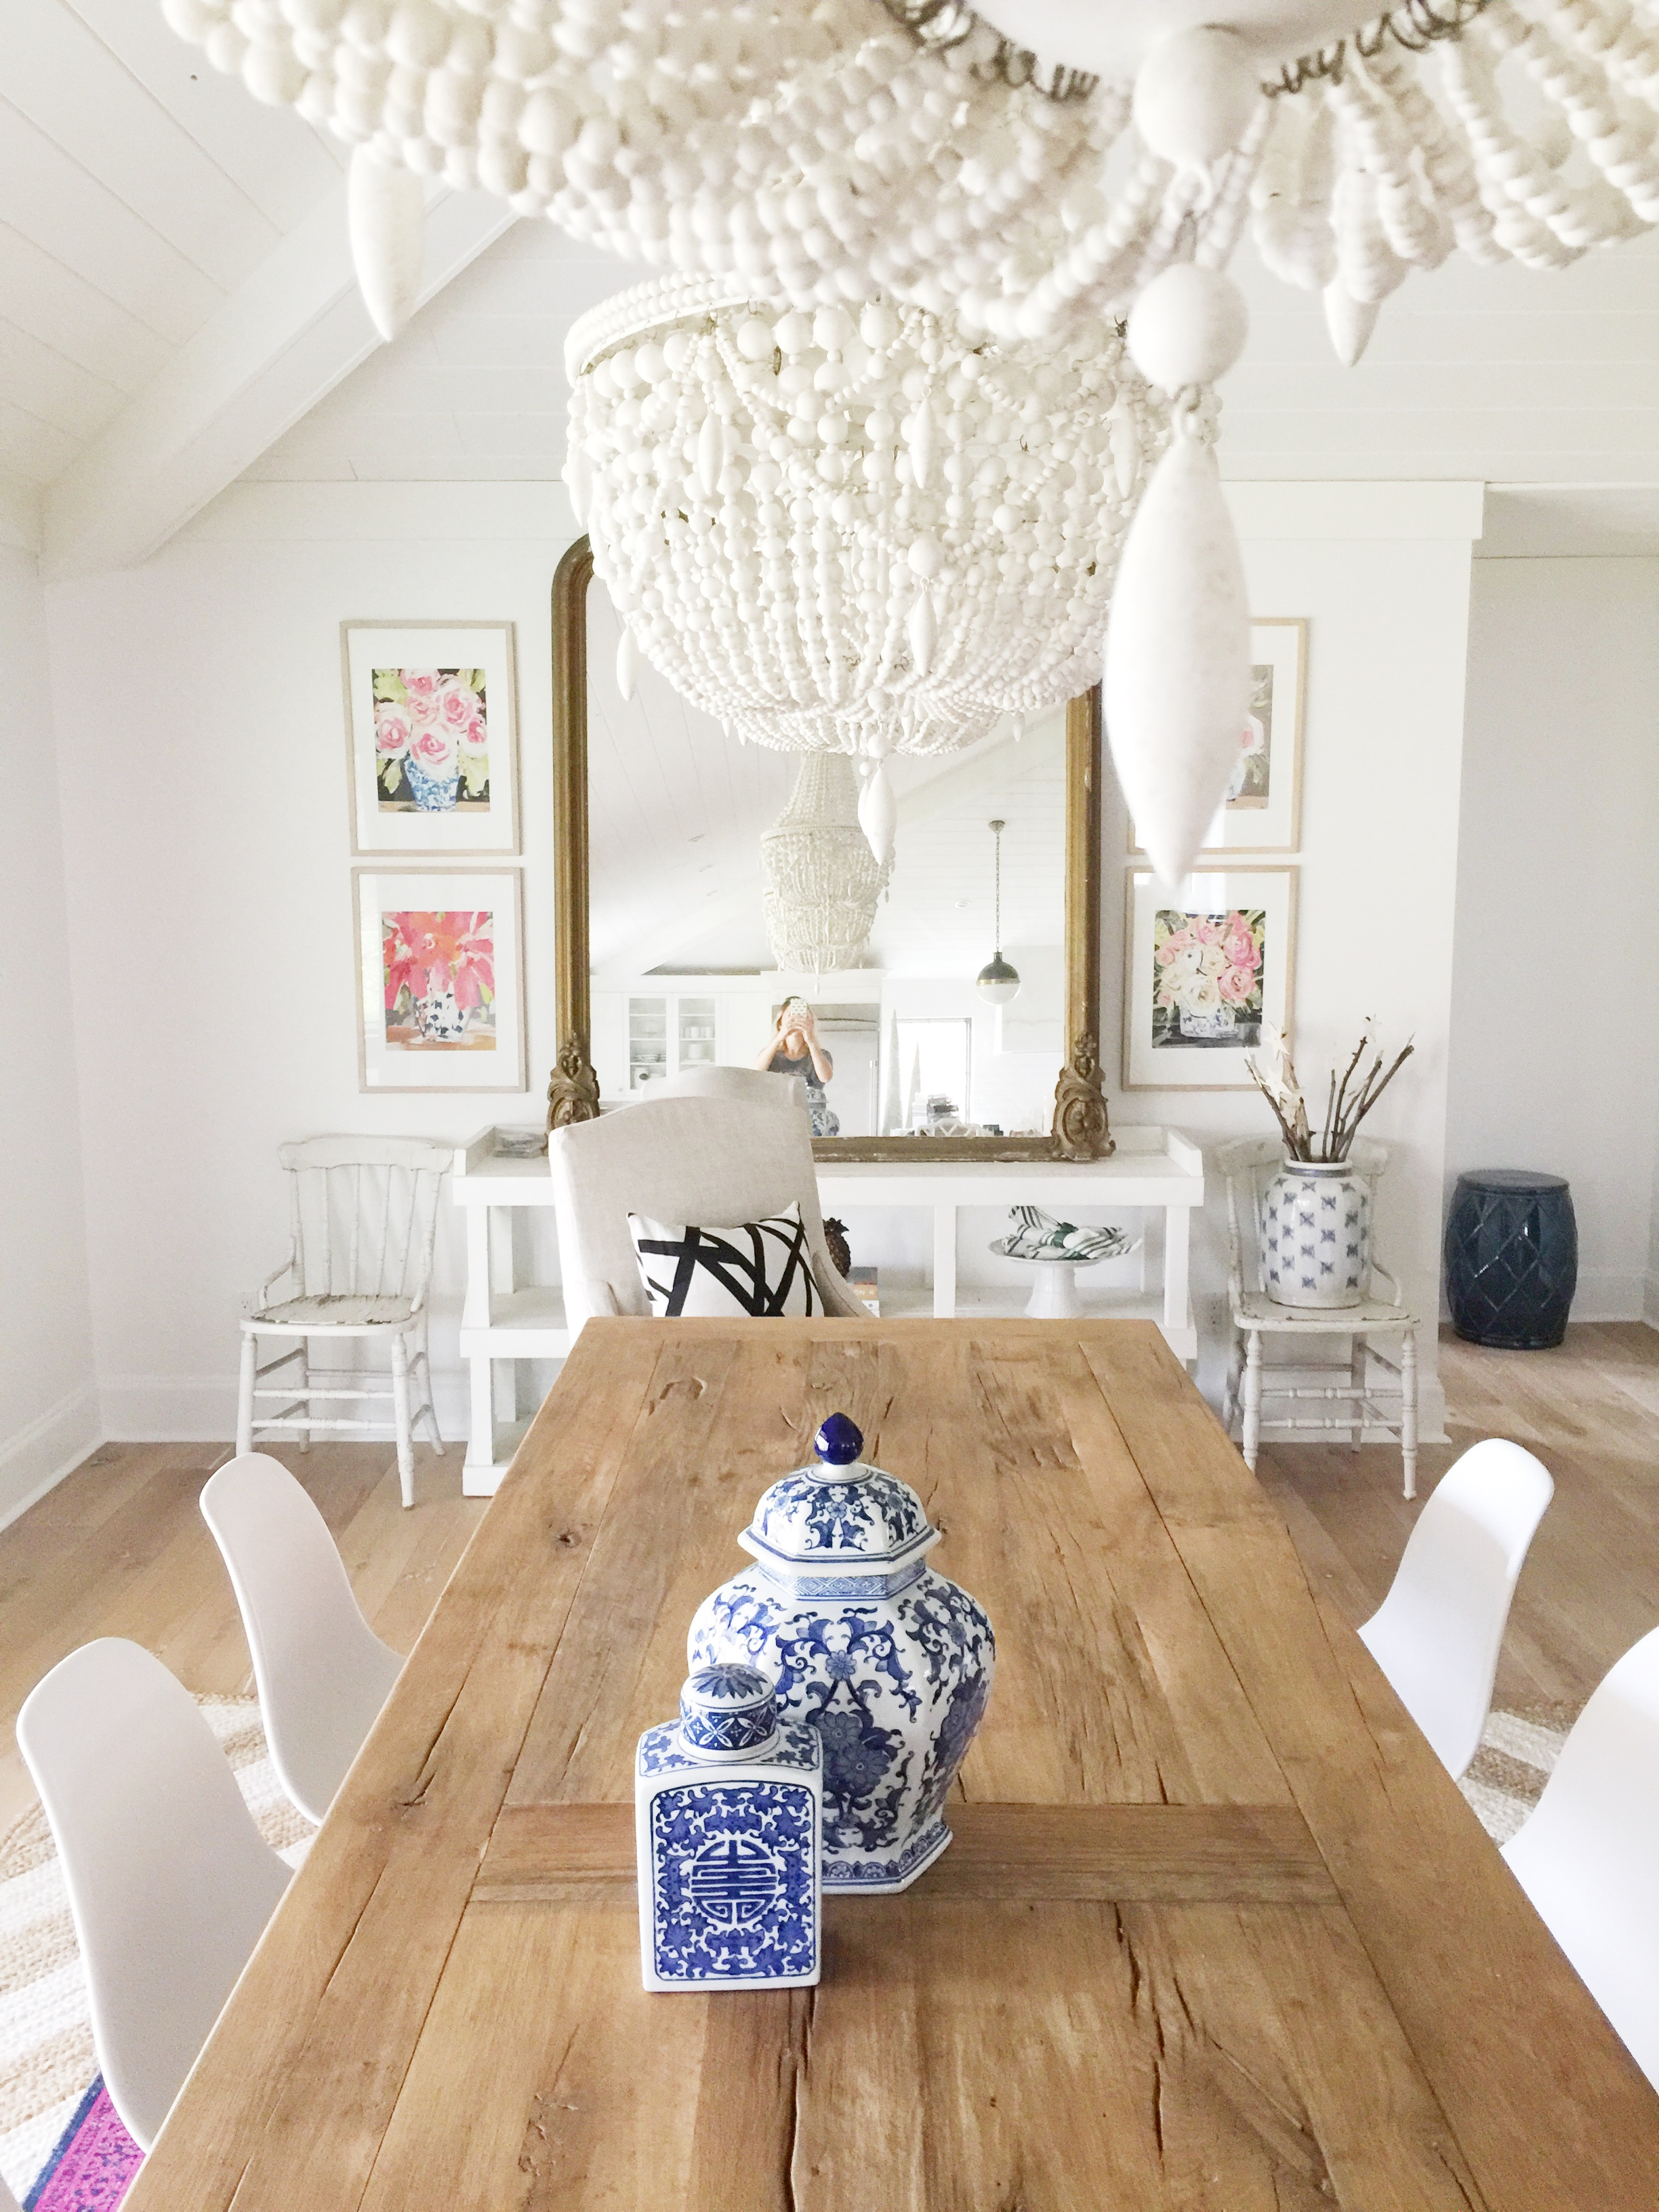 farmhouse_table_white_wood_chandeliers_ginger_jars